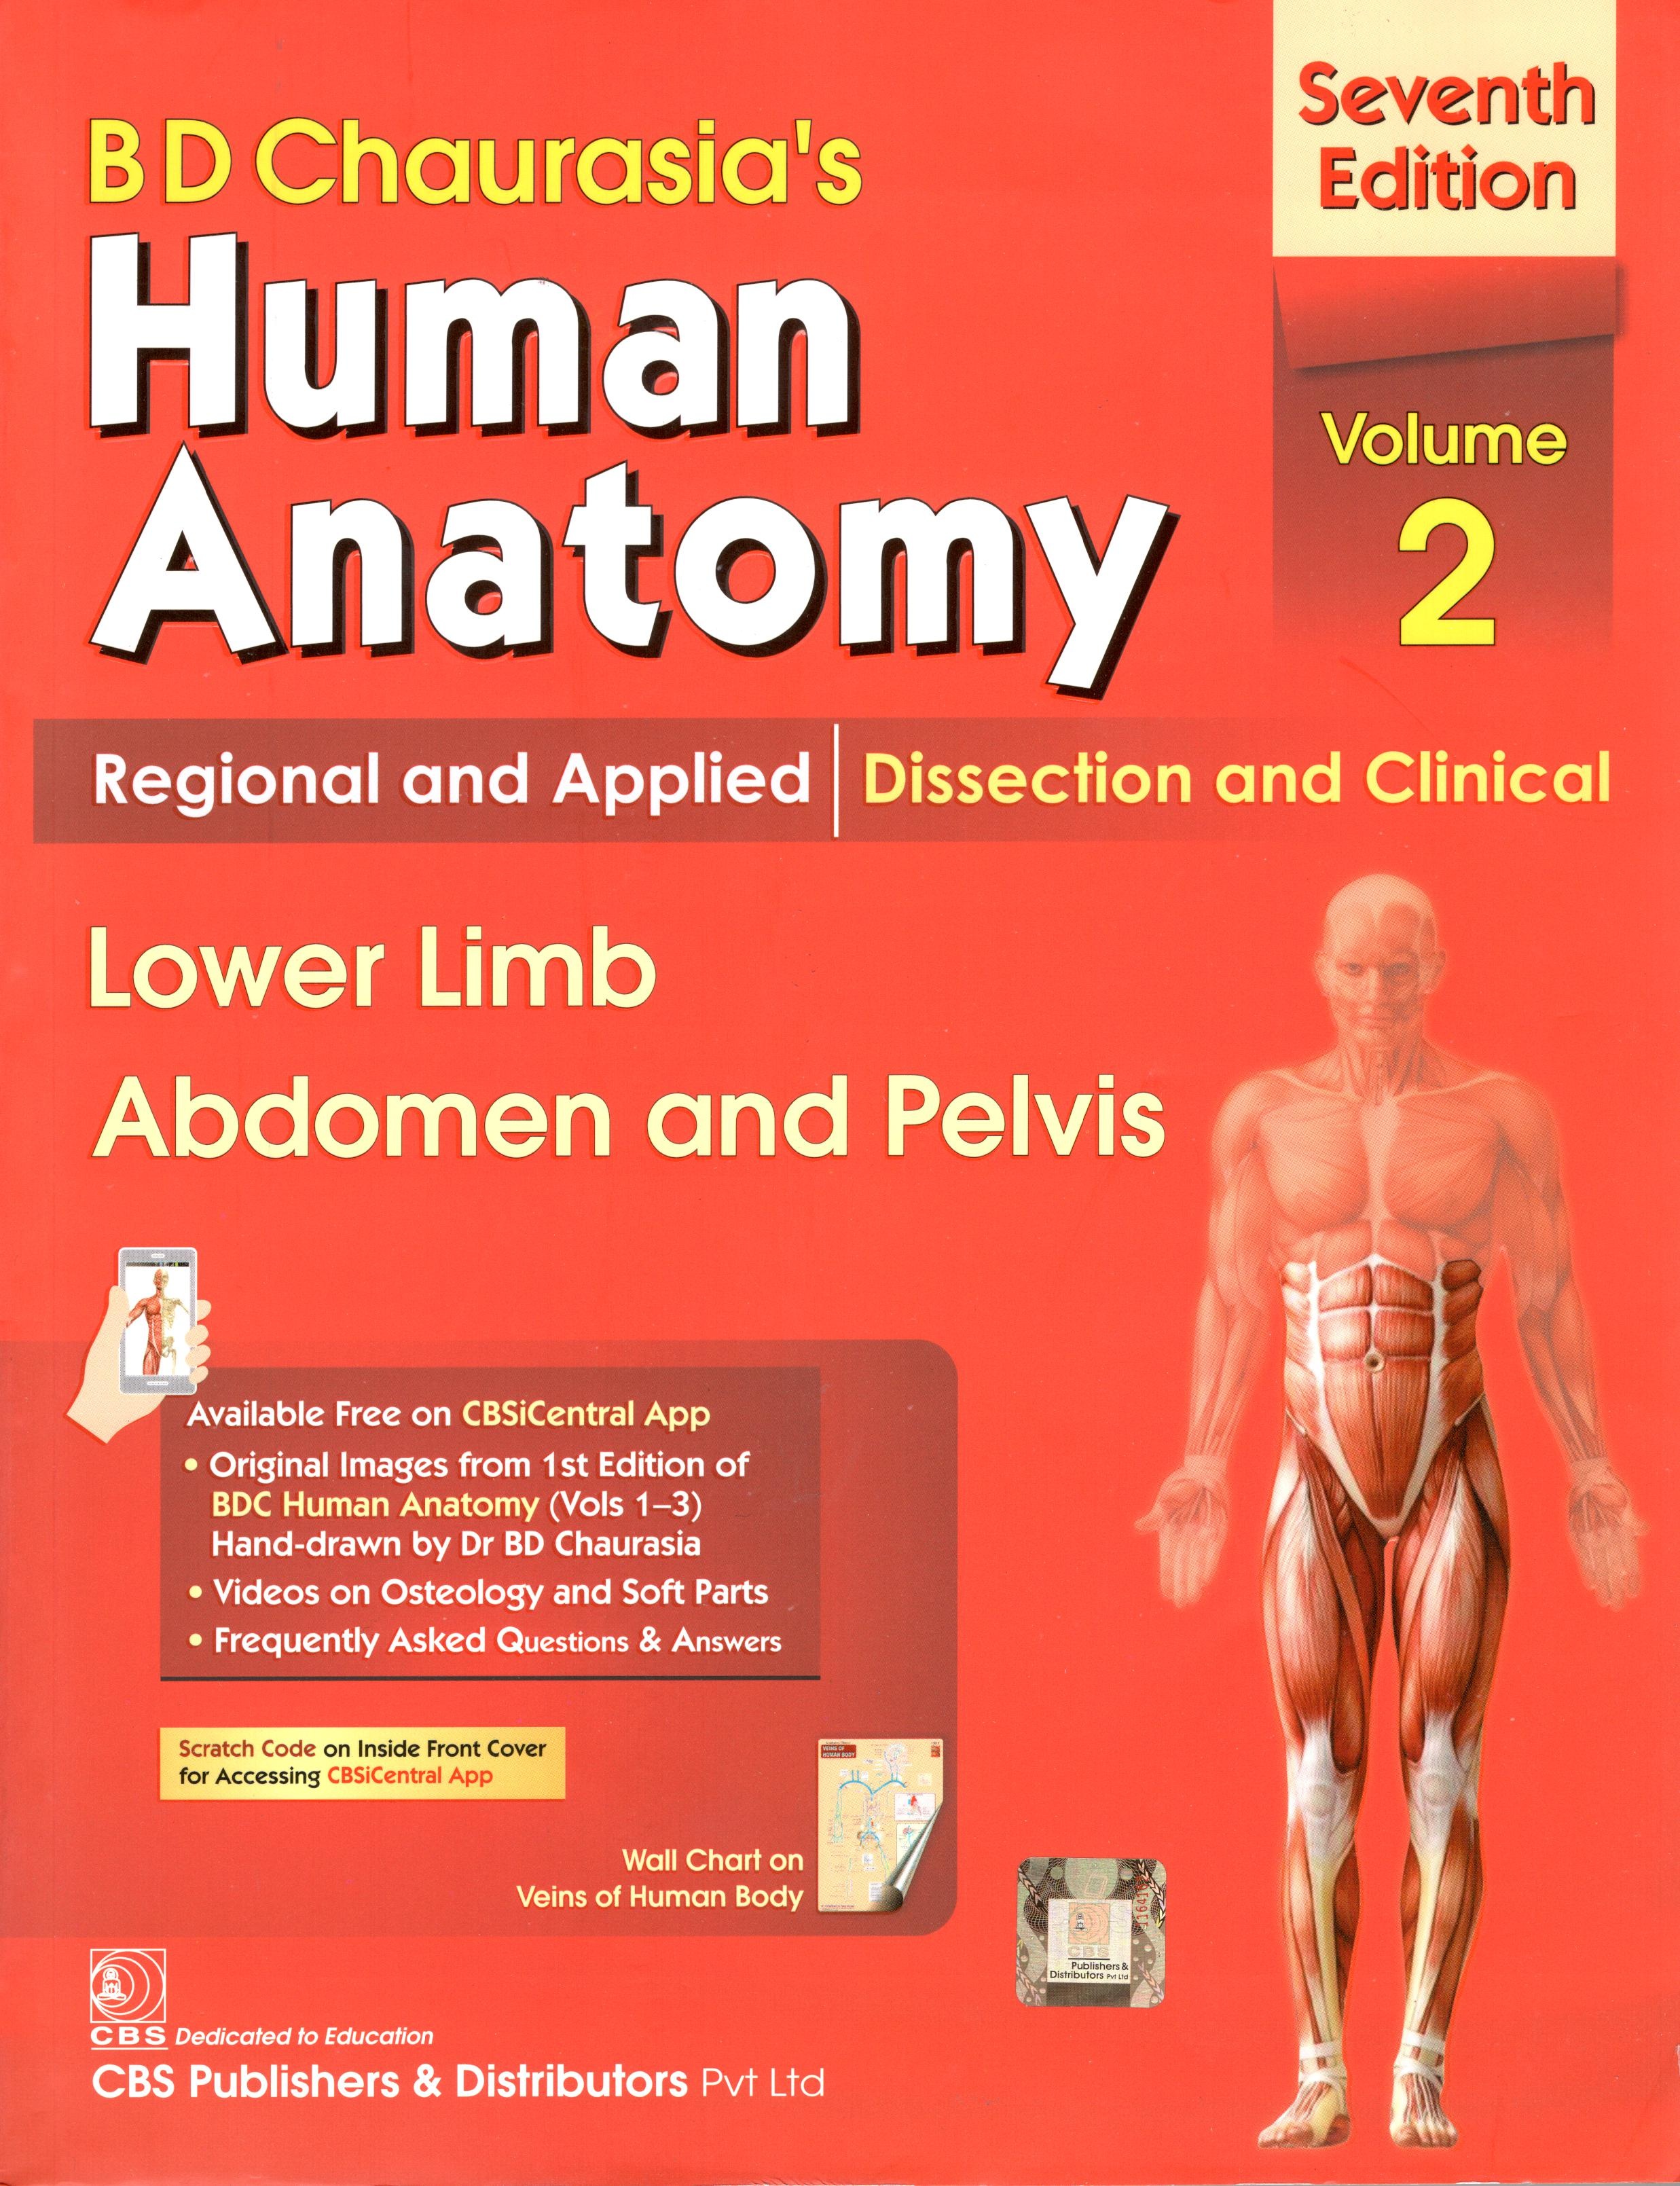 B. D. CHAURASIA`S HUMAN ANATOMY VOLUME 2- 8th EDT